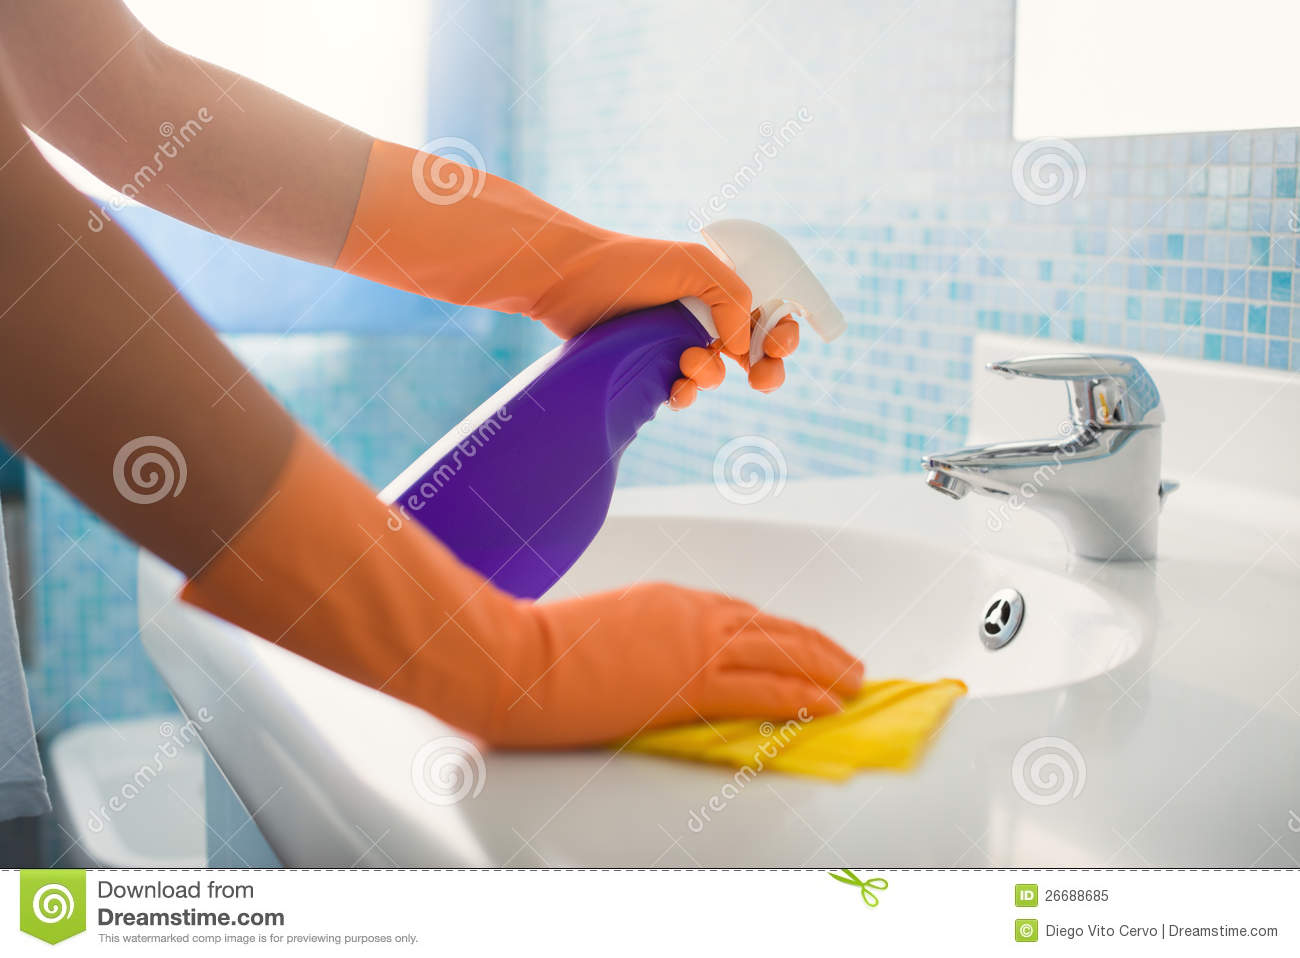 Cleaning Stock Photos Royalty Free Images Dreamstime - Bathroom cleaning lady